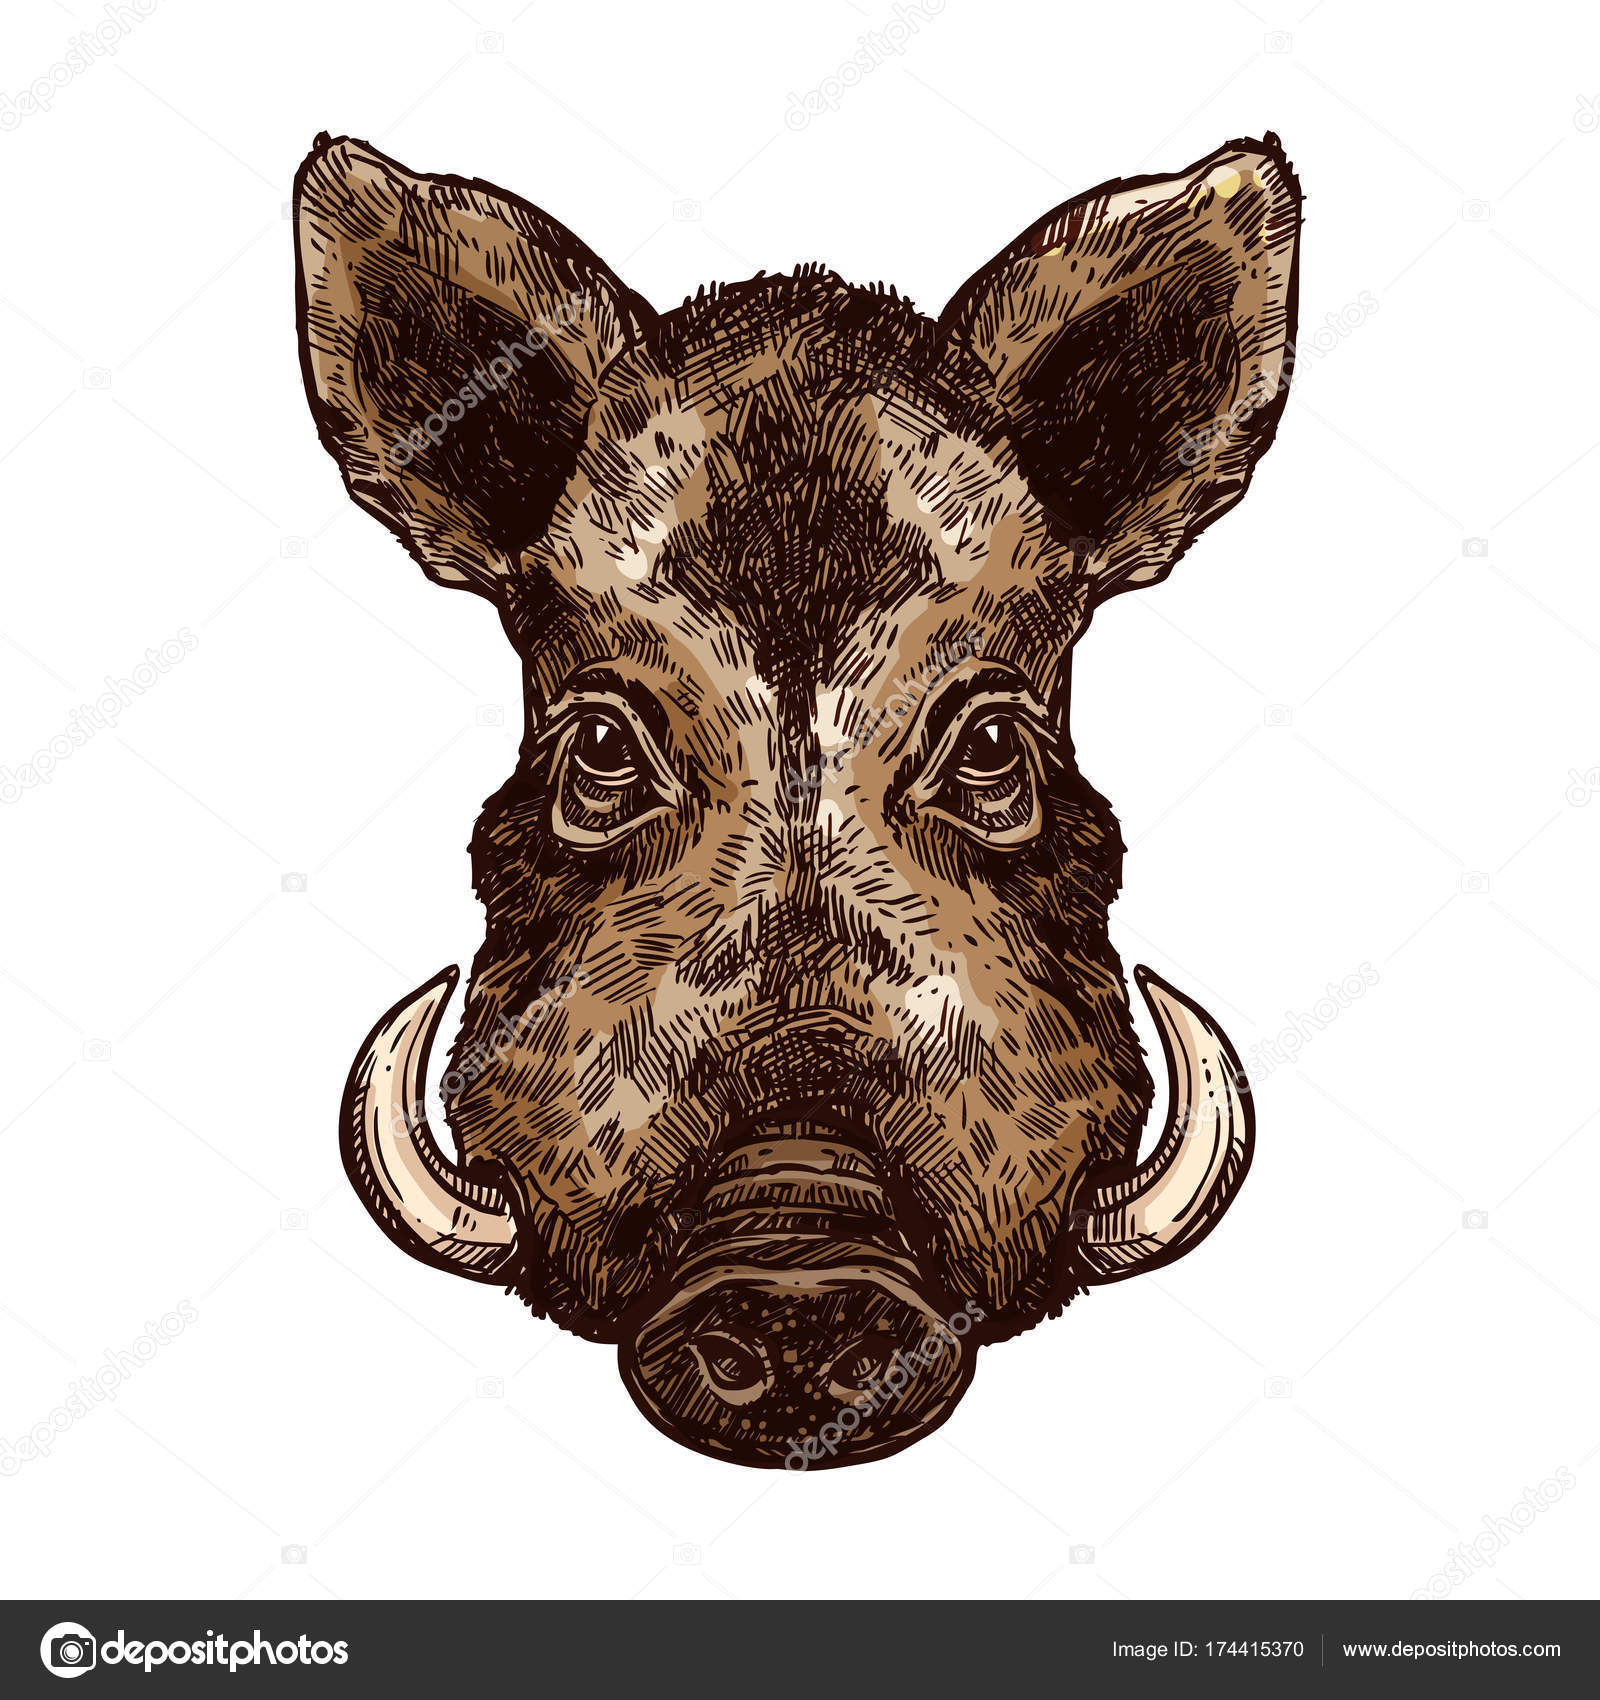 Boar pig or hog wild animal isolated sketch stock vector boar pig or hog wild animal isolated sketch stock vector 174415370 biocorpaavc